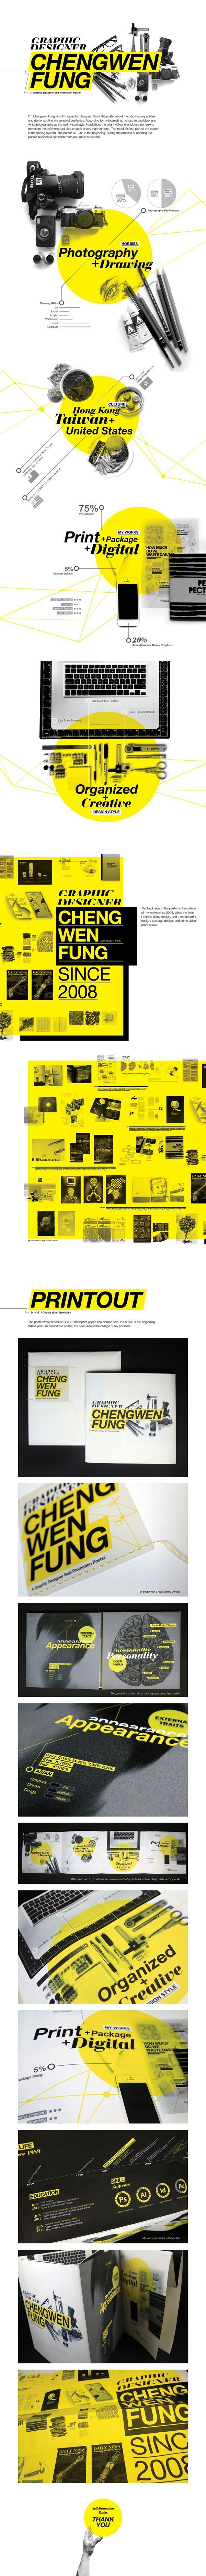 Photography and drawing website design. Black and yellow.